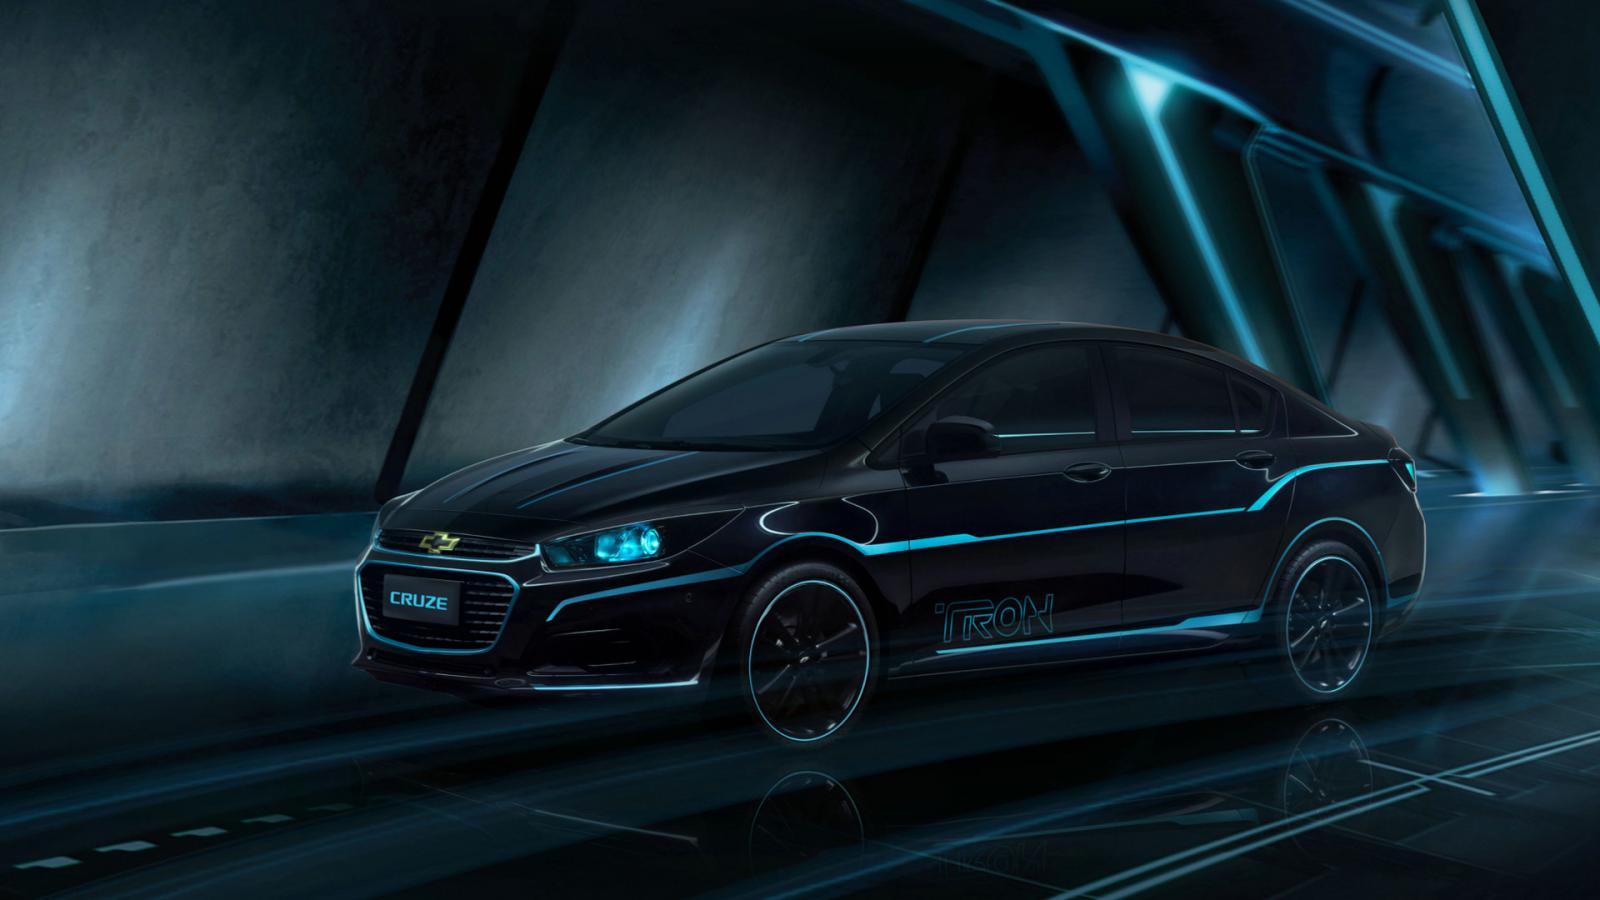 chevrolet-works-with-disney-for-a-special-cruze-model-inspired-by-tron-legacy_2.jpg (1600×900)